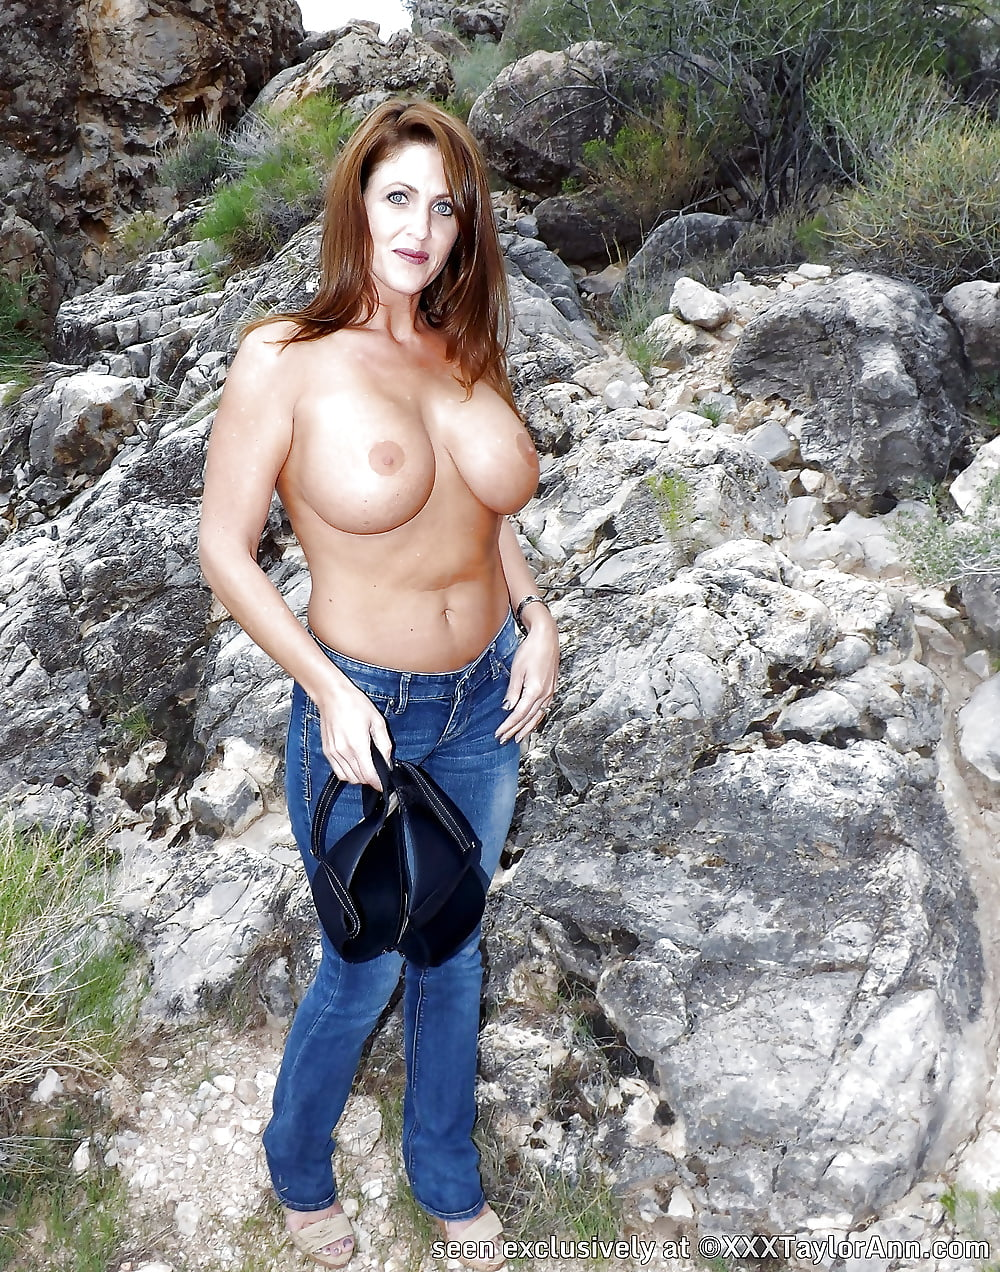 Hot hiking topless